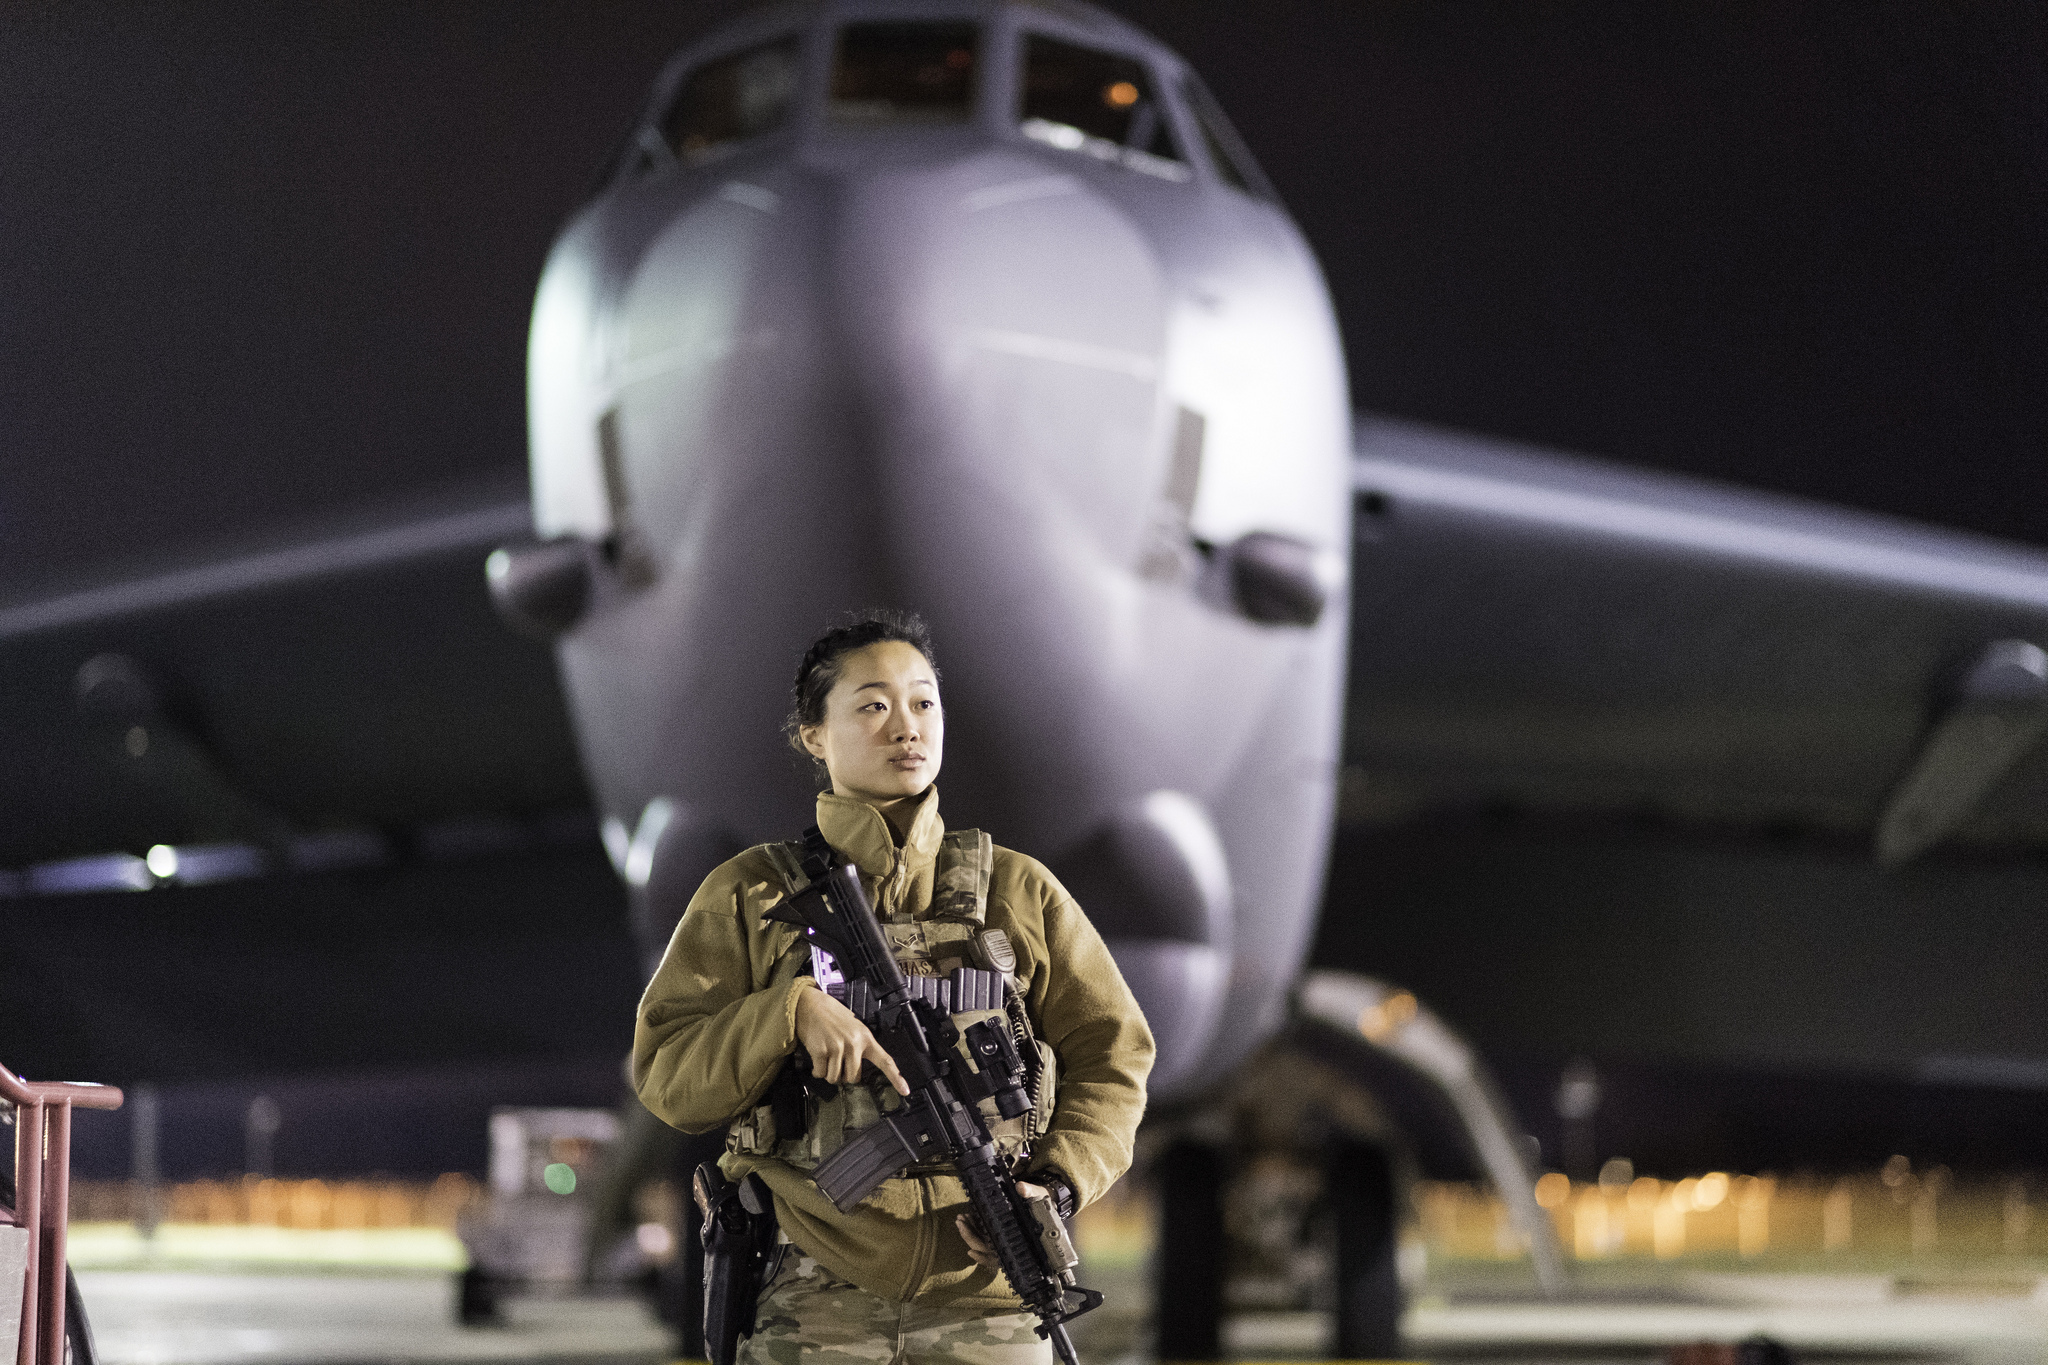 Airman 1st Class Chanelle Juhasz, 2nd Security Forces Squadron patrolman, guards a B-52 Stratofortress during Global Thunder 19 at Barksdale Air Force Base, La., Nov. 4, 2018. (Staff Sgt. Mozer O. Da Cunha/Air Force)